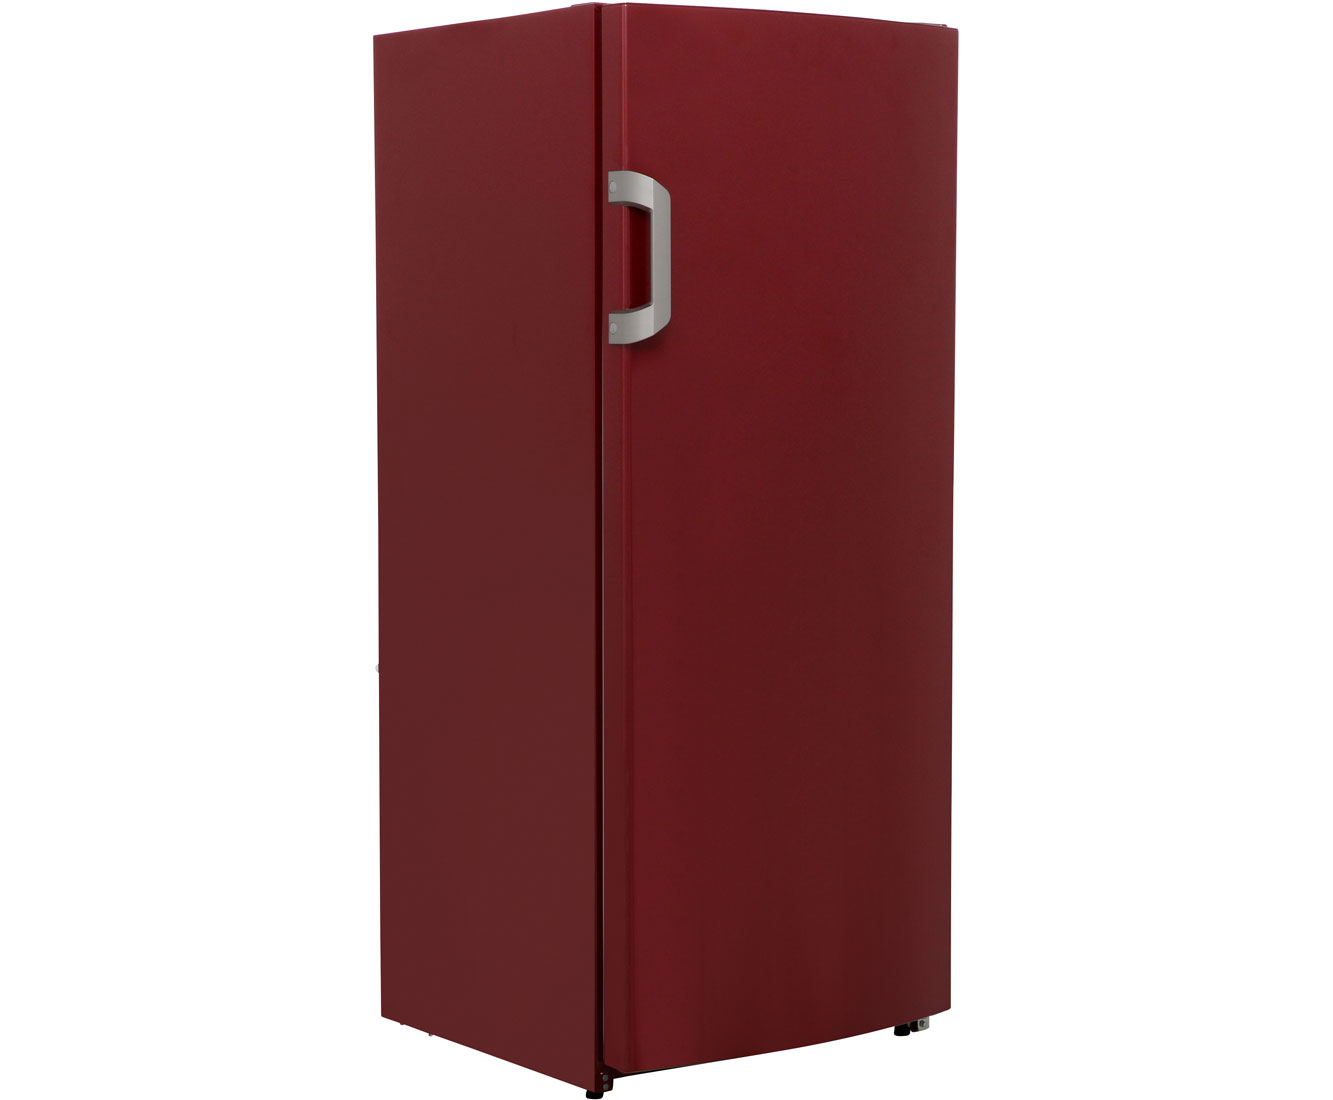 gorenje r6152br k hlschrank freistehend 60cm bordeaux rot neu ebay. Black Bedroom Furniture Sets. Home Design Ideas